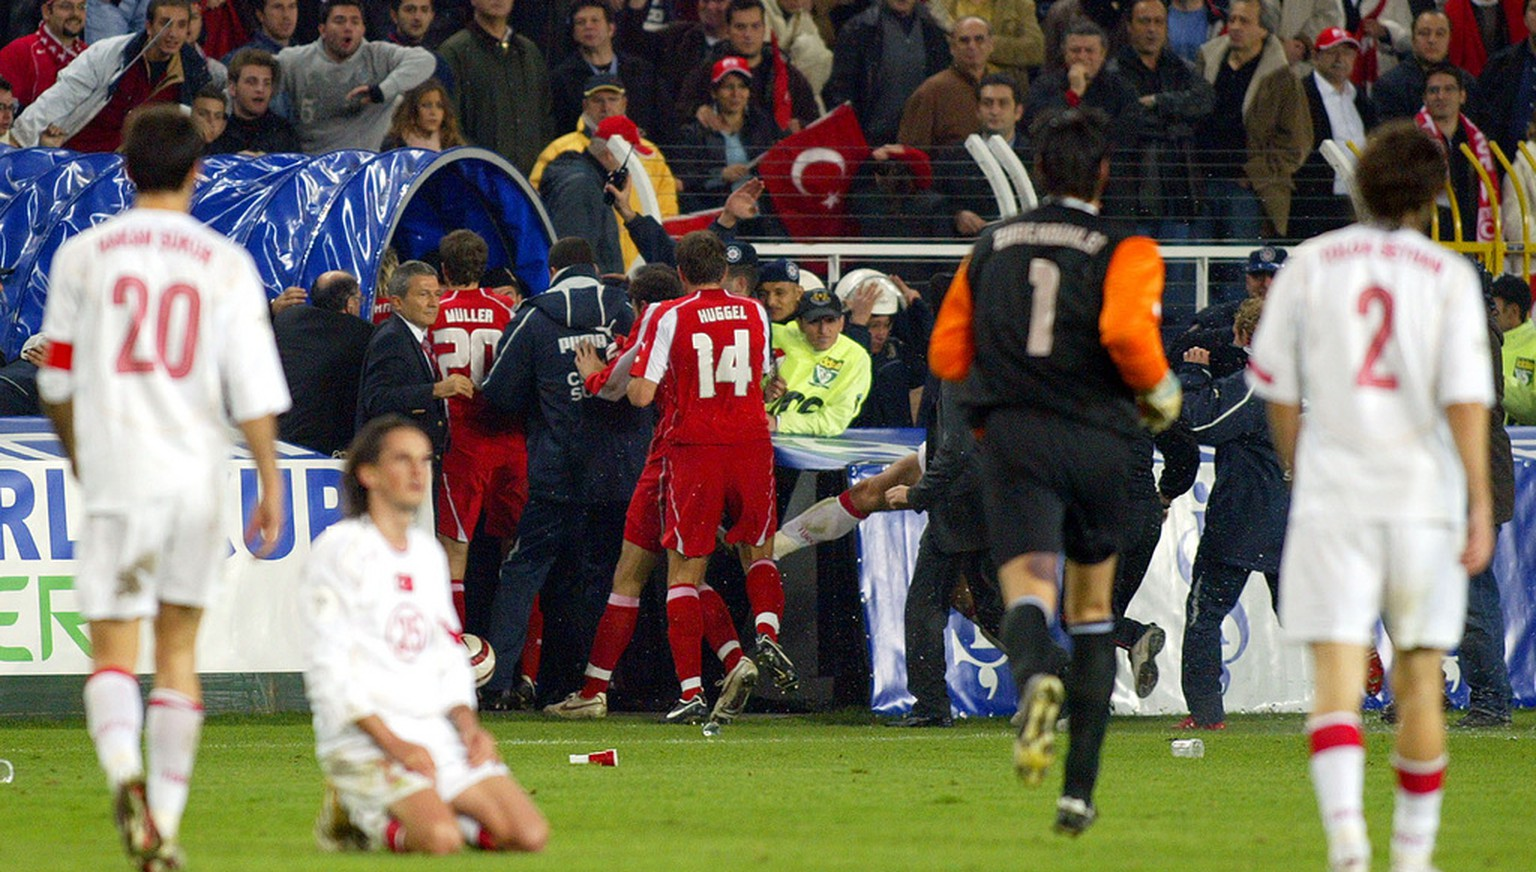 Swiss players, center, leave the field at Sukru Saracoglu Stadium in Istanbul, Turkey, Wednesday, Nov. 16, 2005, at the end of the 2006 World Cup play-off second leg soccer match between Turkey and Switzerland. Turkey won 4-2 but Switzerland advanced for the World Cup finals winning the tie on away goals 4-4. (AP Photo/Osman Orsal)